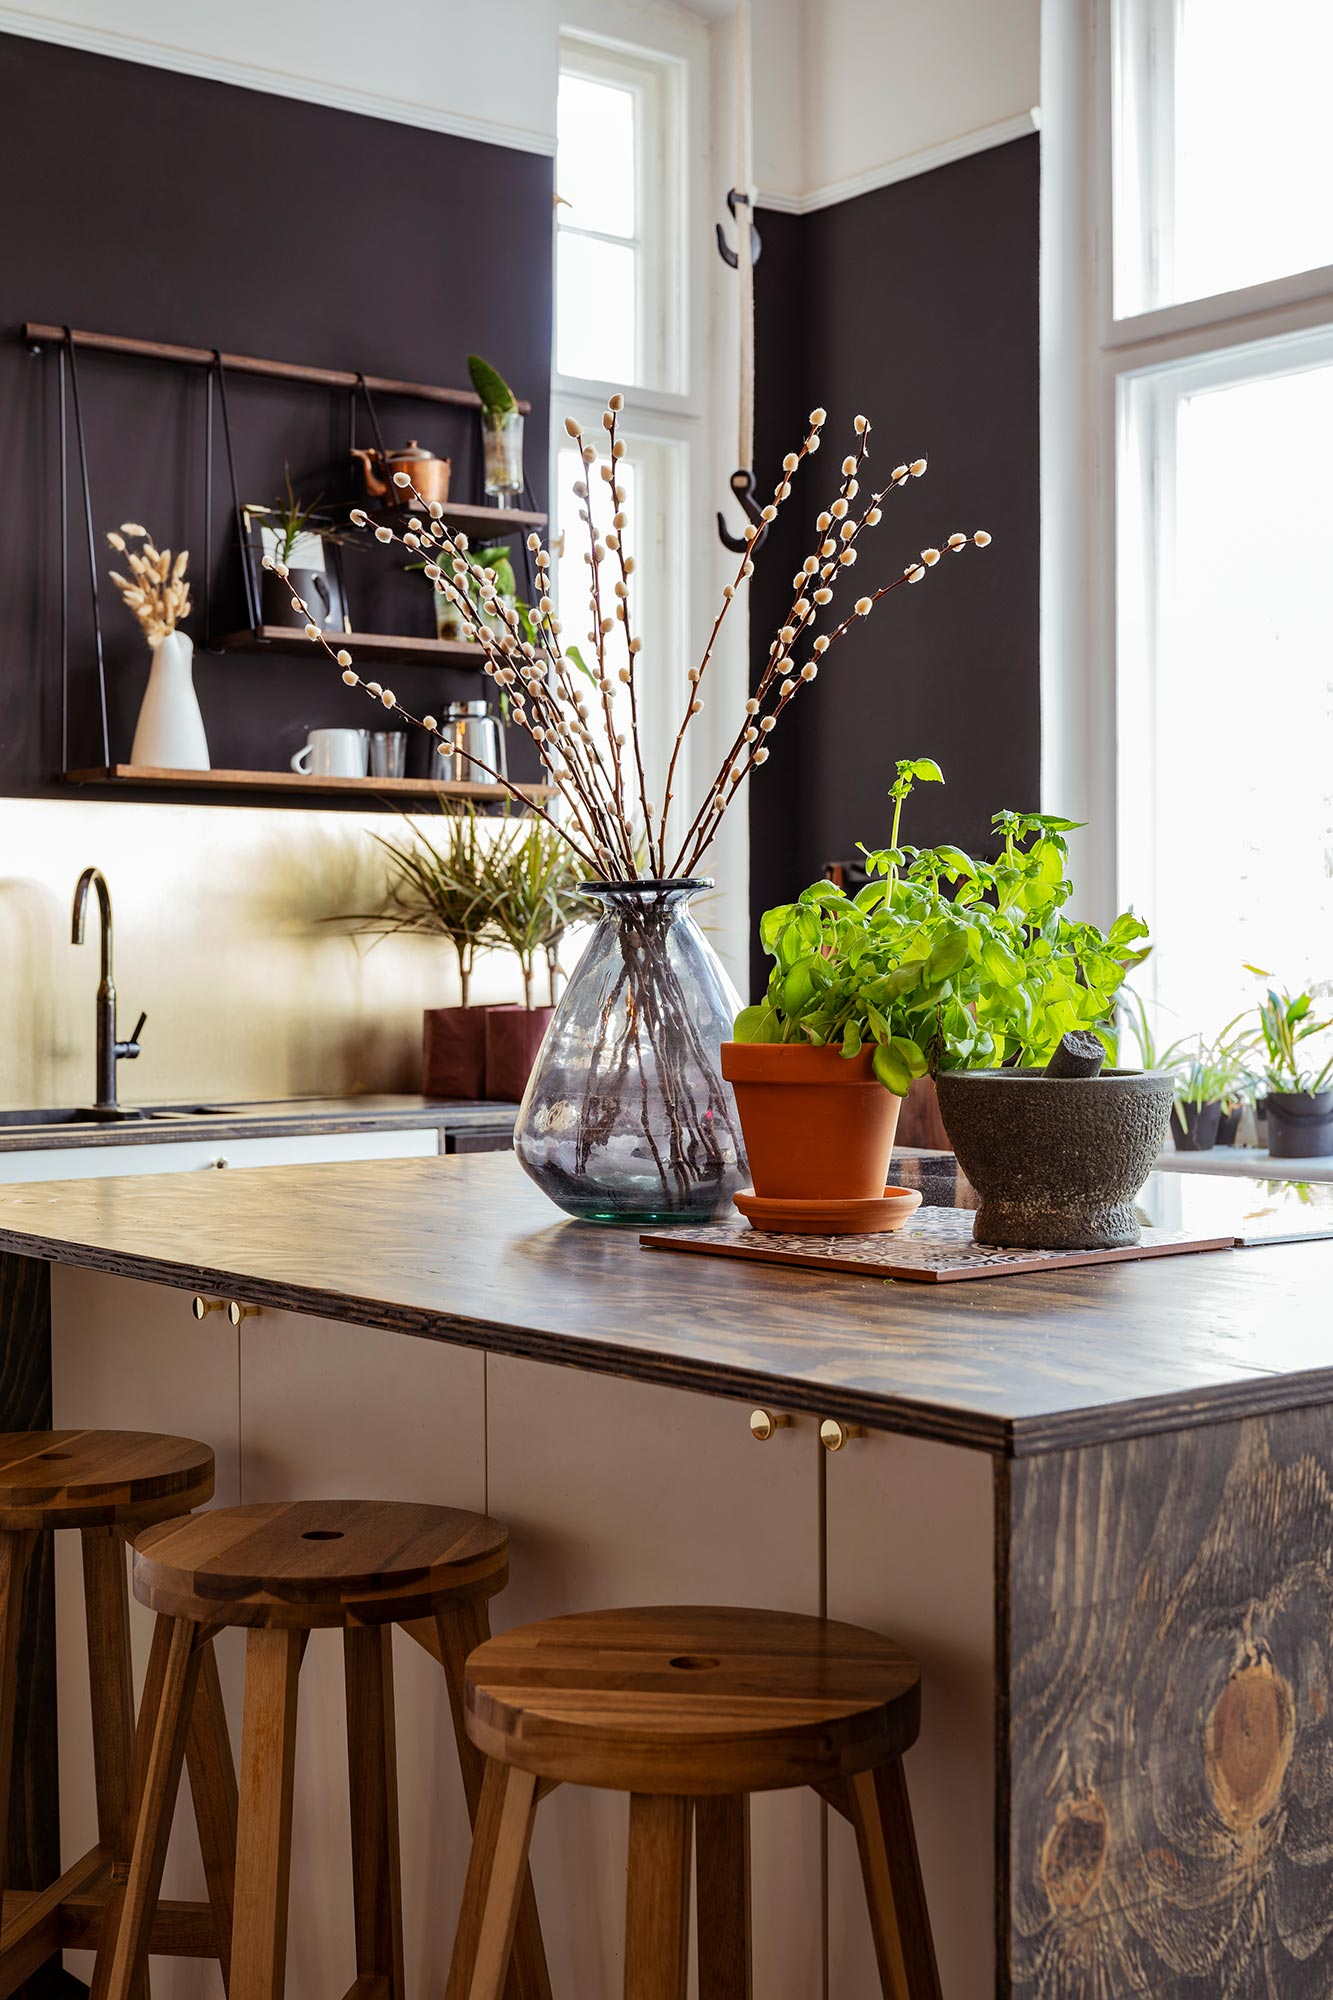 Kitchen with dried flowers